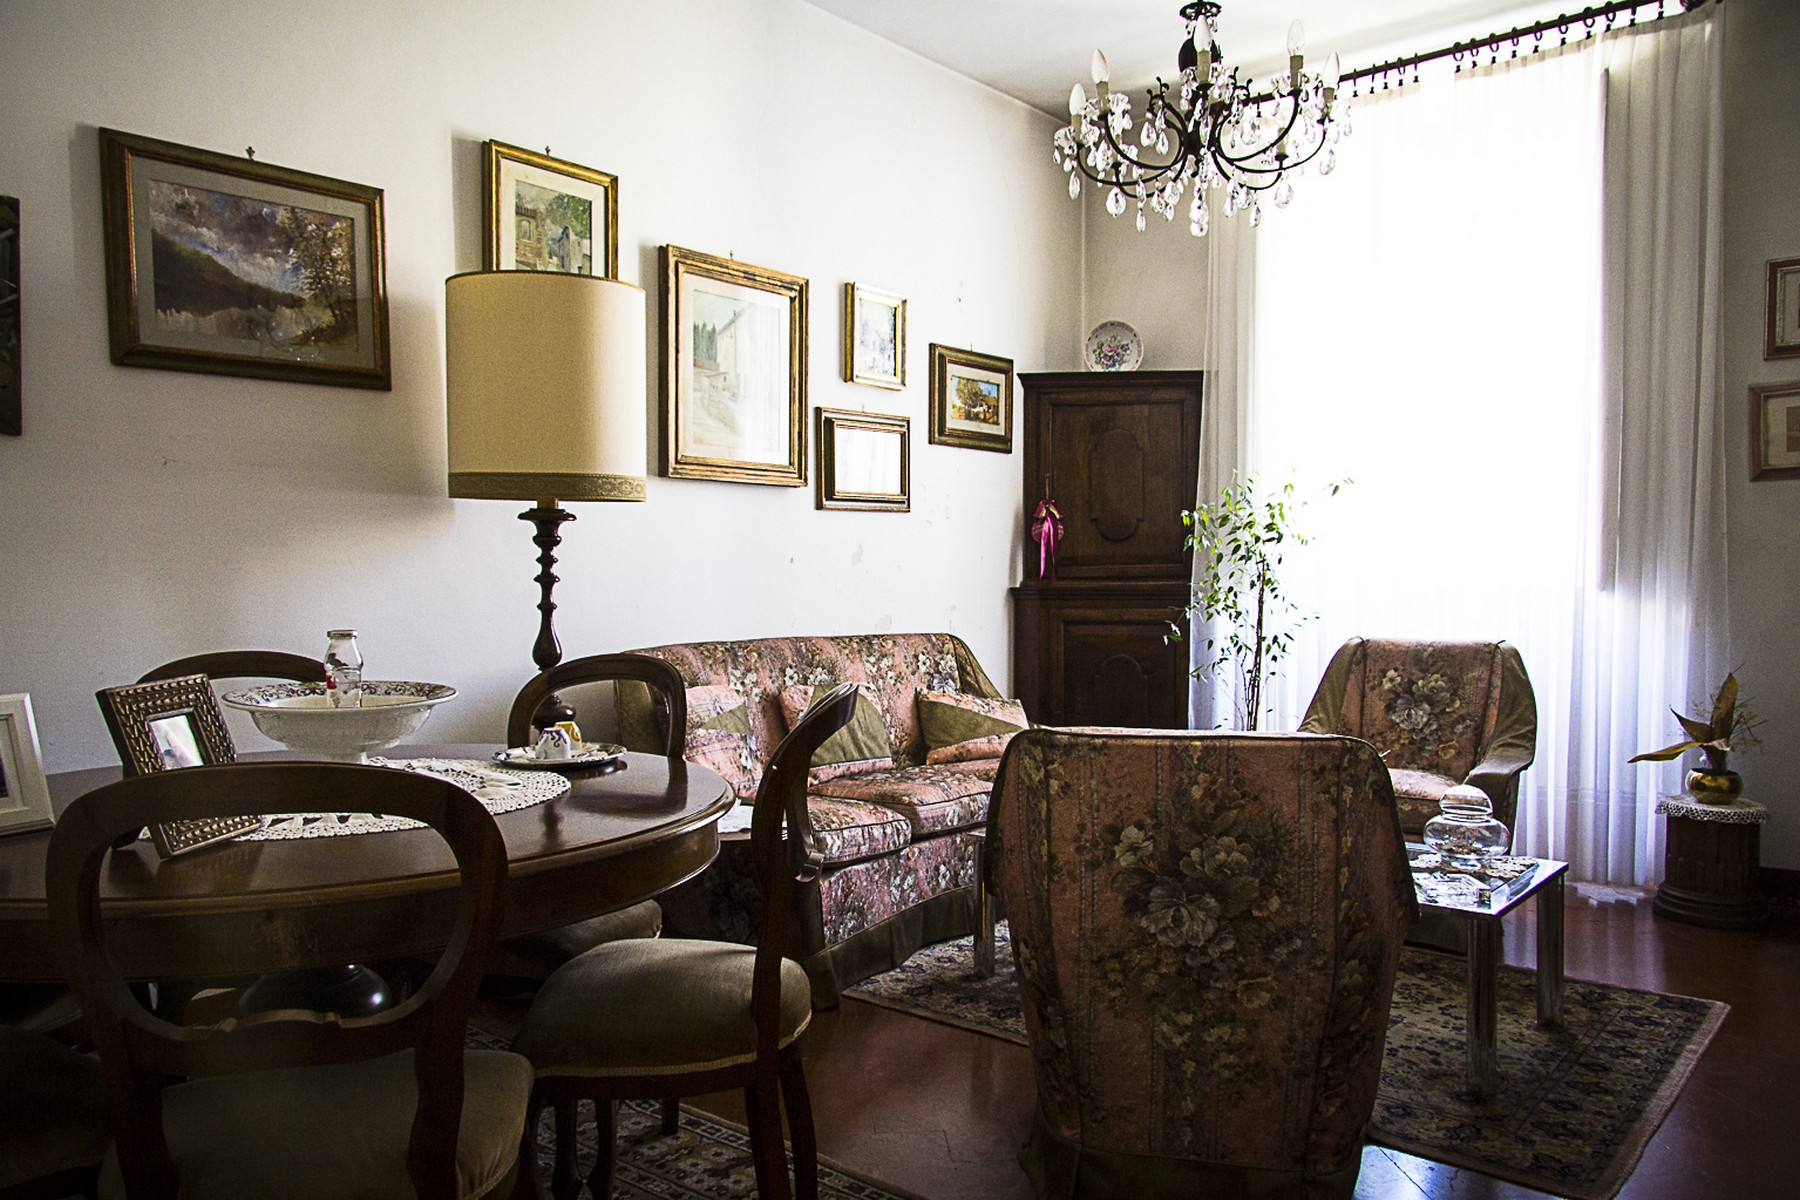 Additional photo for property listing at Historic palace close to the Bargello museum Via Ghibellina Firenze, Florence 50100 Italia